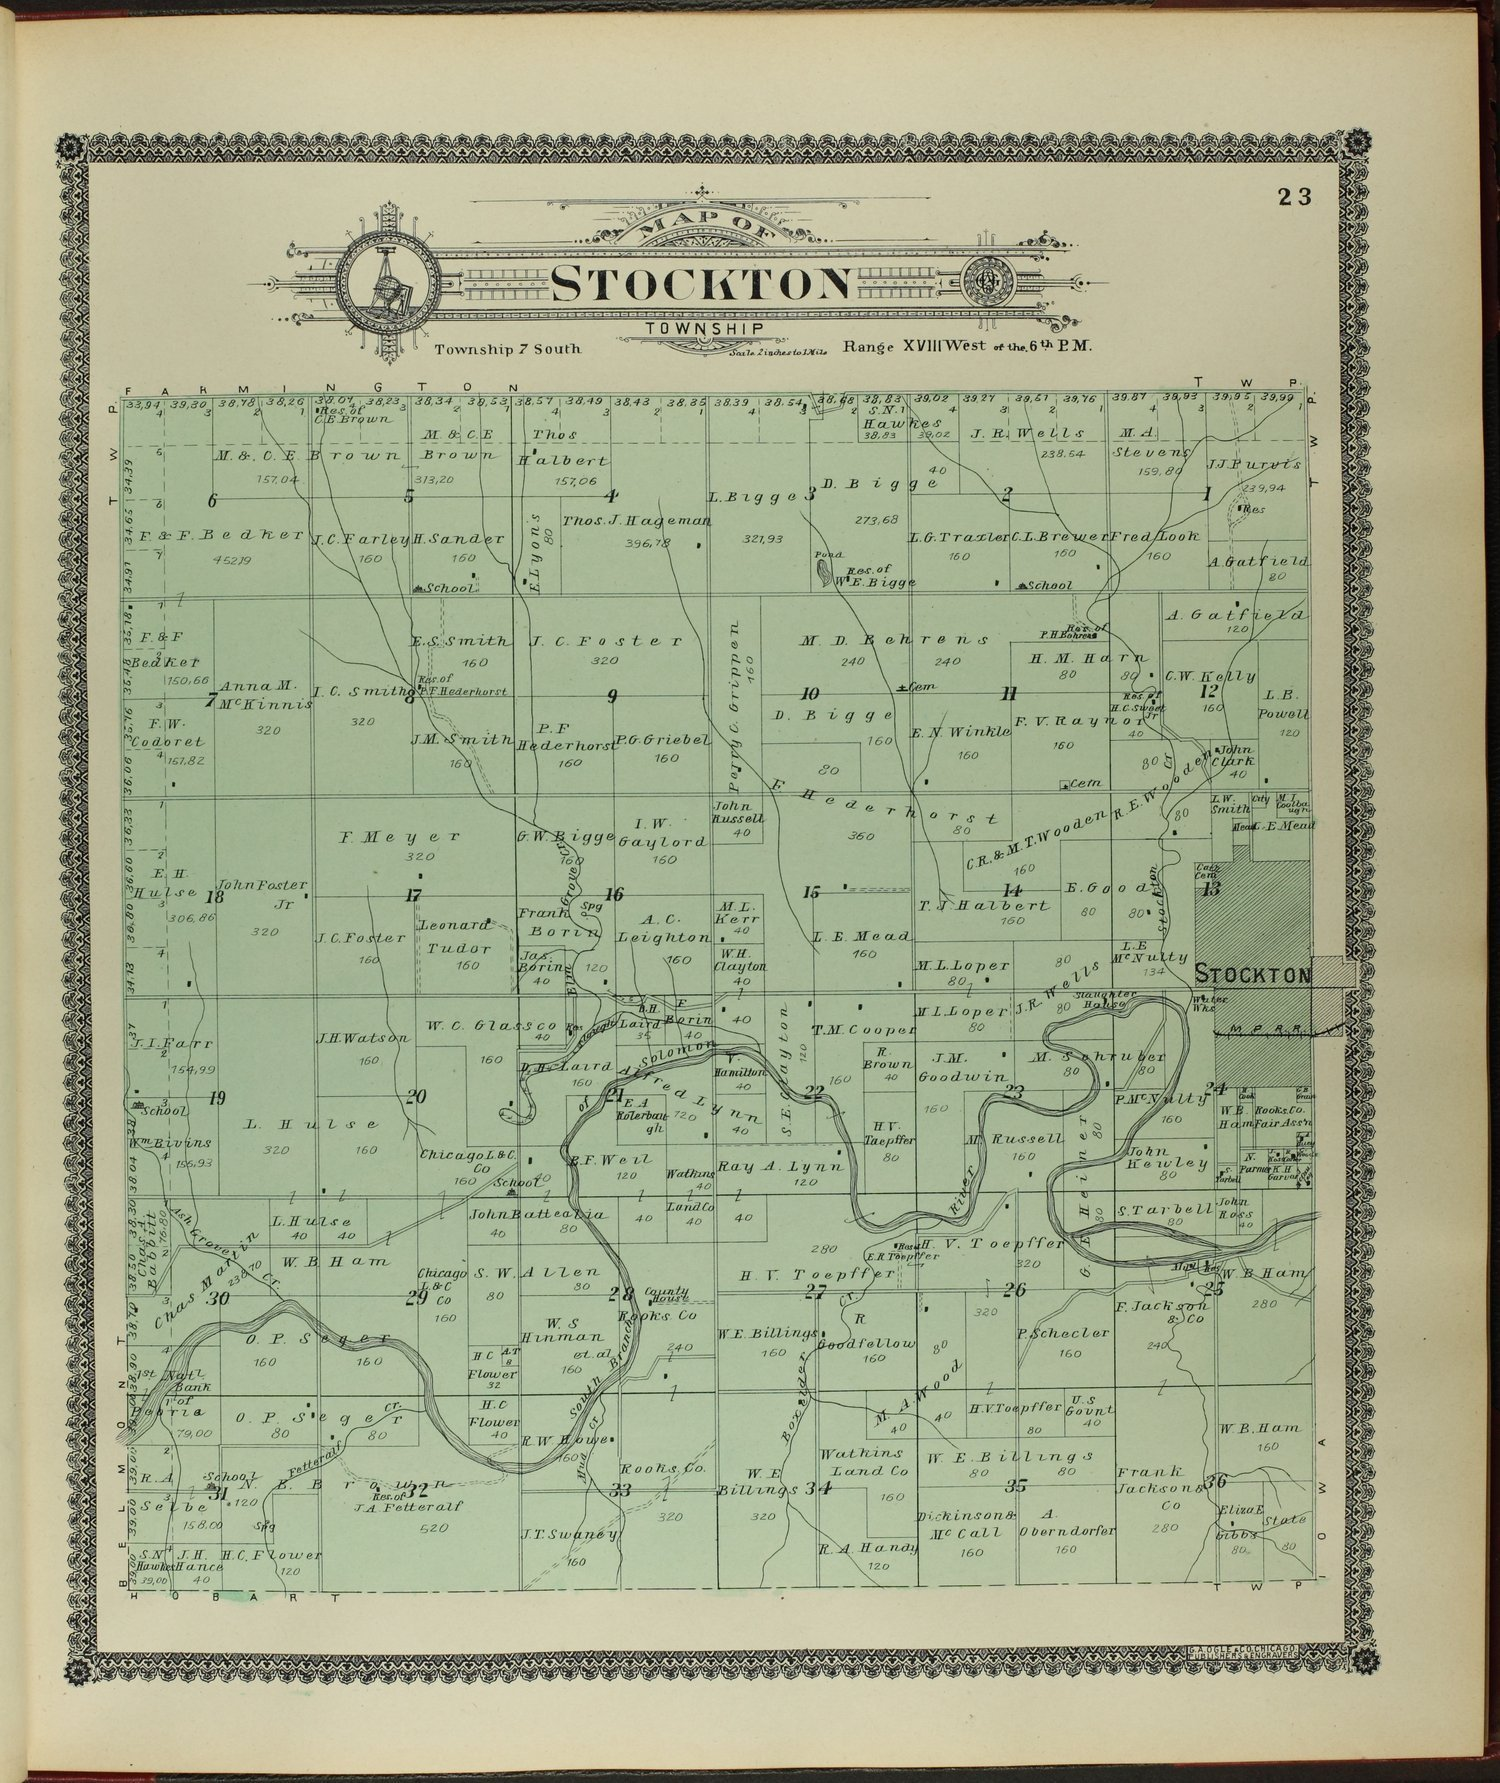 Standard atlas of Rooks County, Kansas - 23